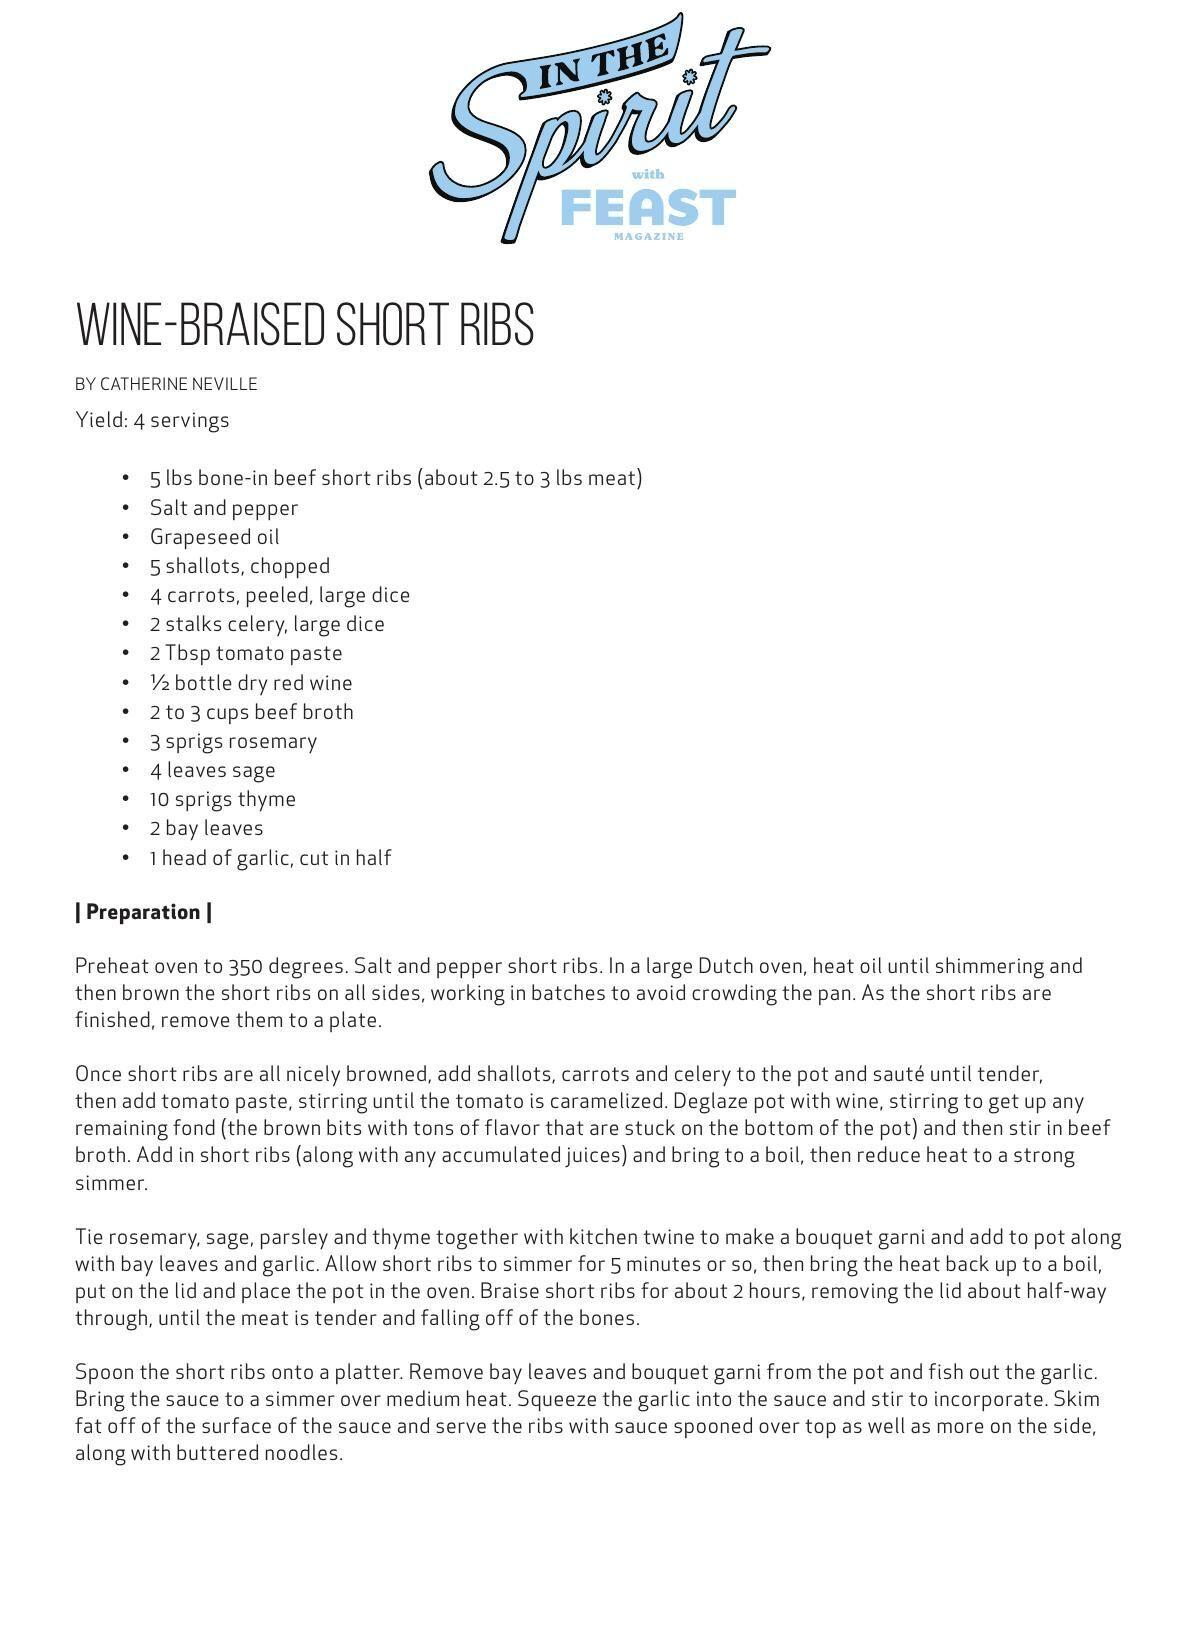 Download the wine-braised short ribs recipe here